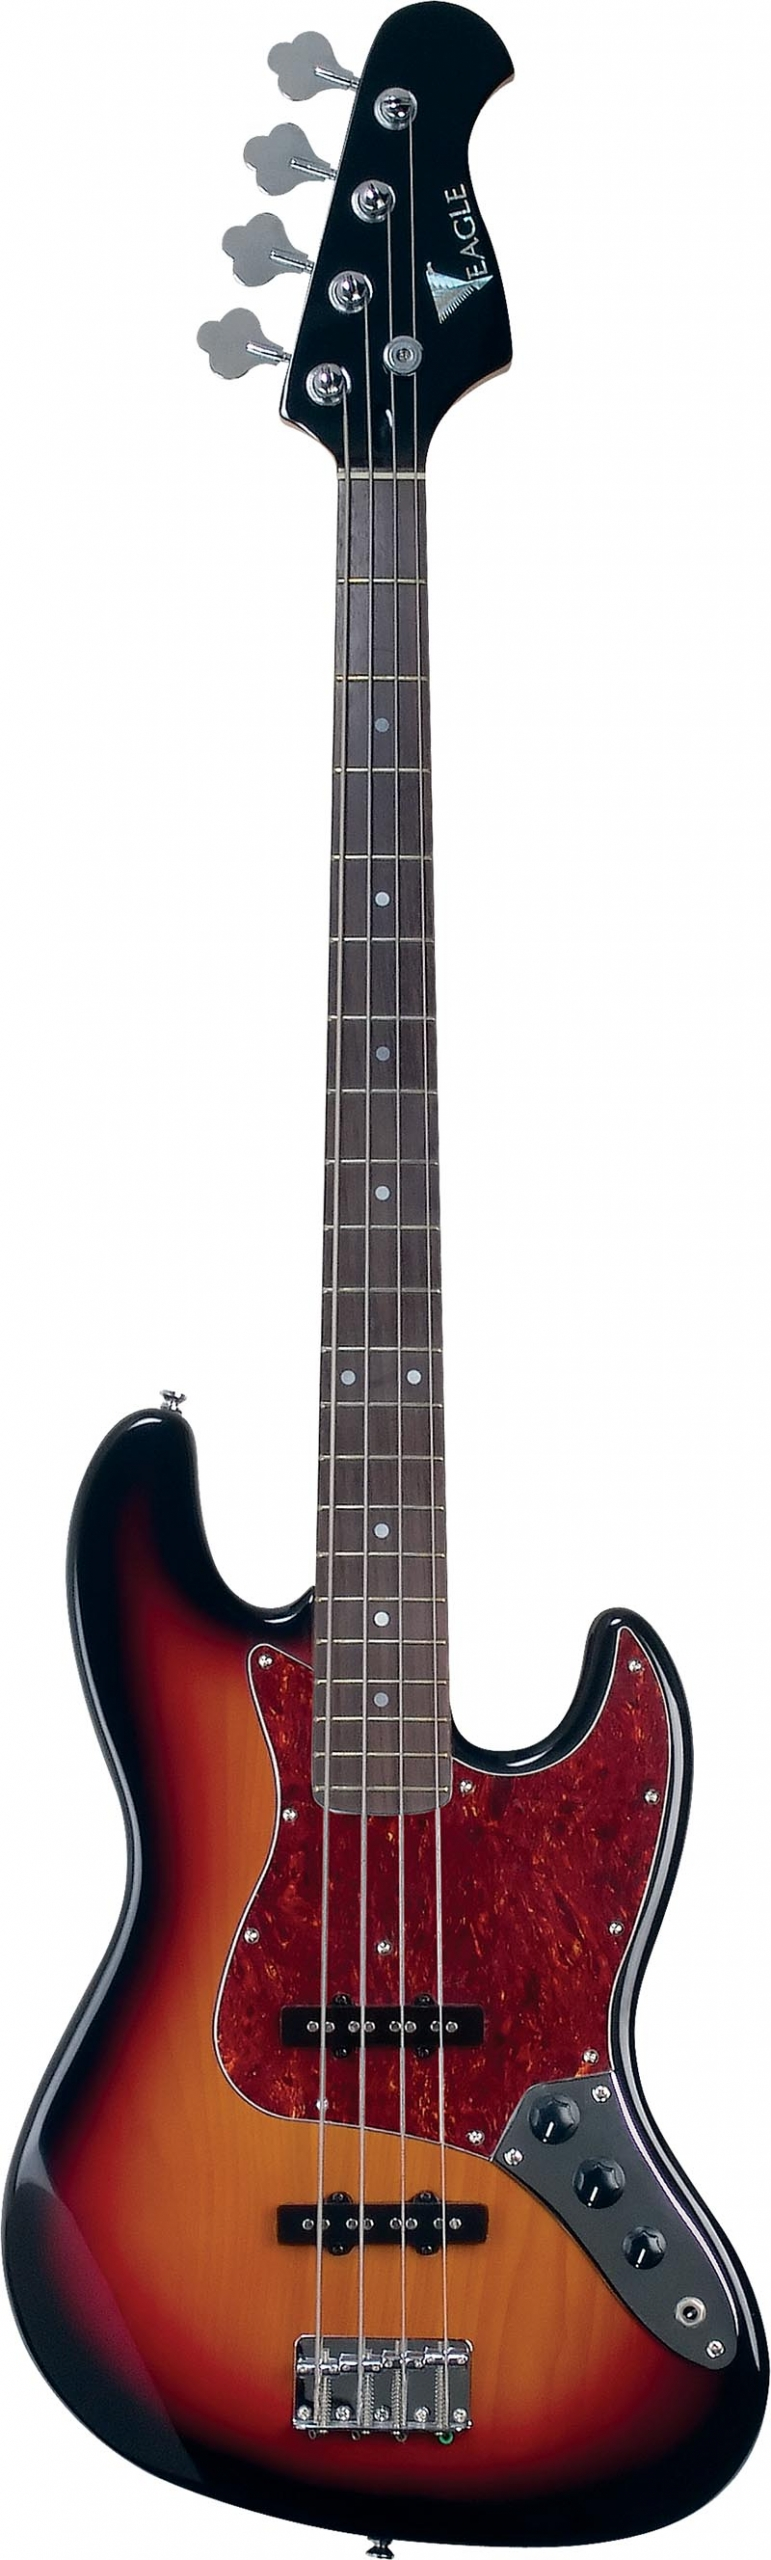 sjb006 baixo eletrico 4 cordas jazz bass eagle sjb006 sb sunburst visao frontal vertical scaled